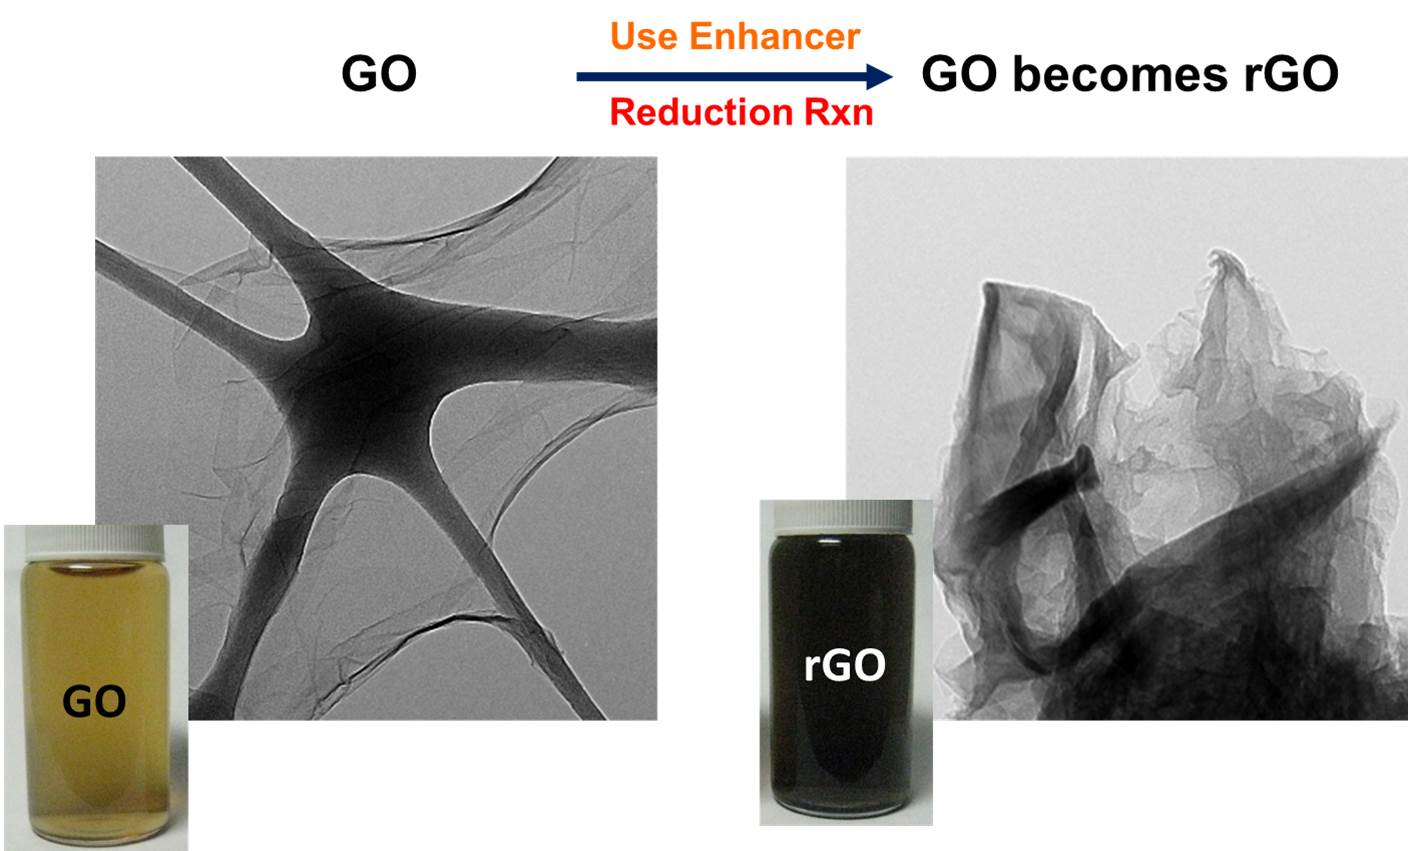 CompositionProcess for Preparing a Non-conductive Substrate with Reduced Graphene Oxide for Electroplating